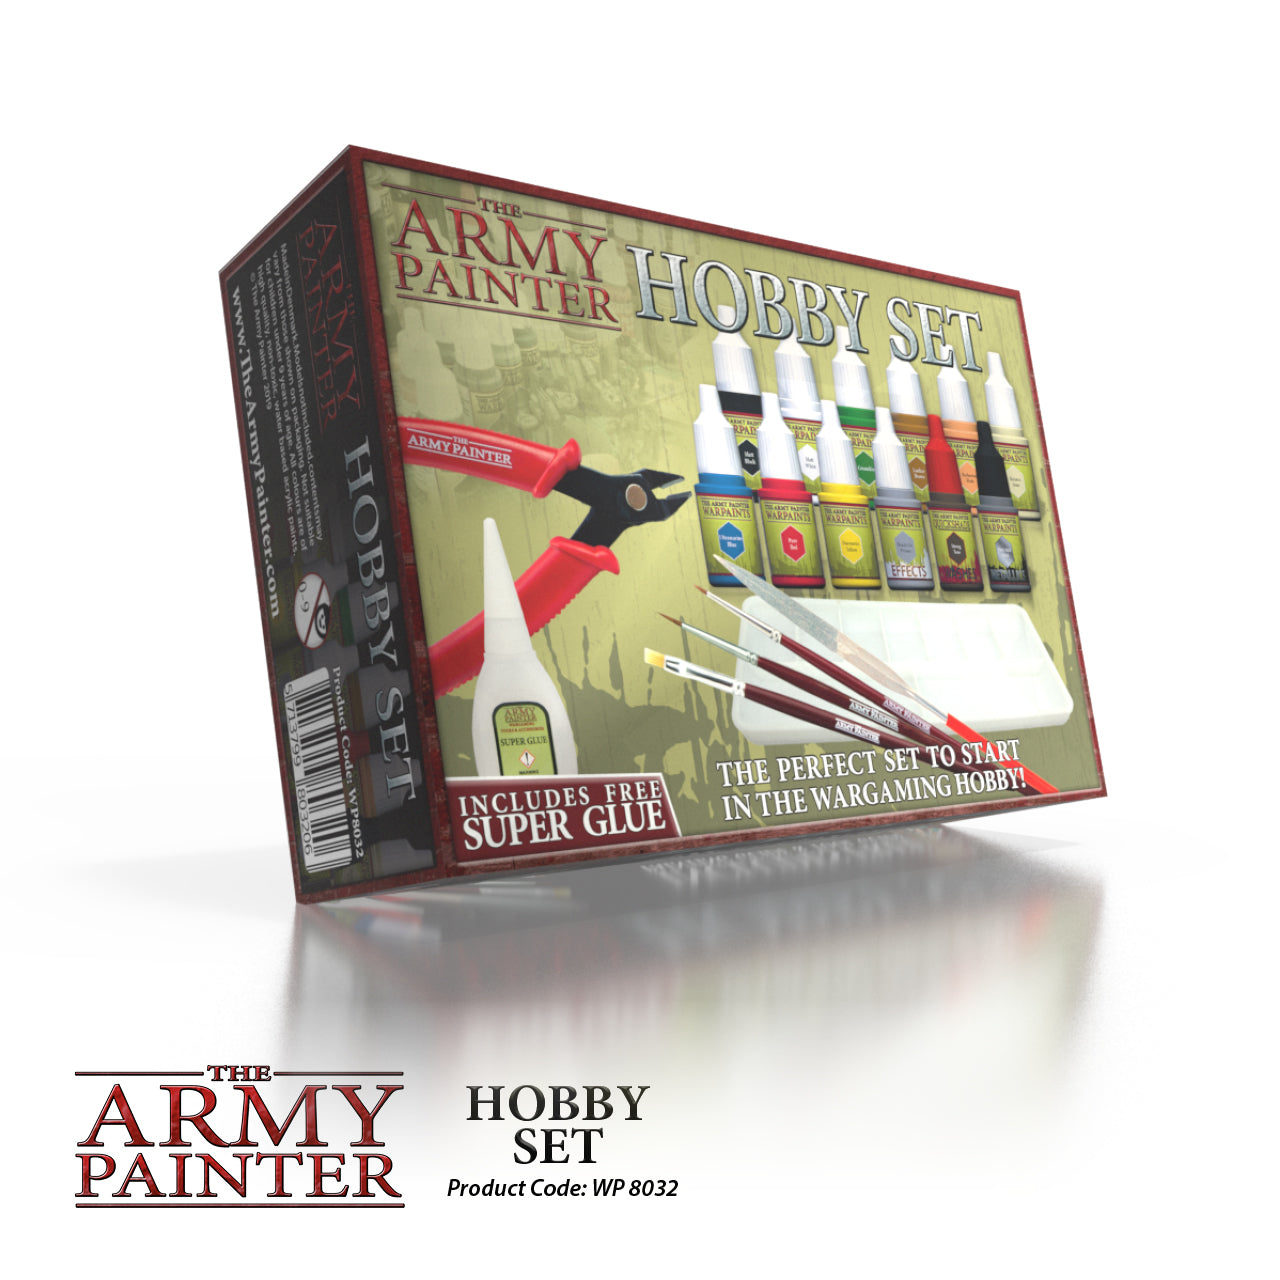 Army Painter Hobby Set